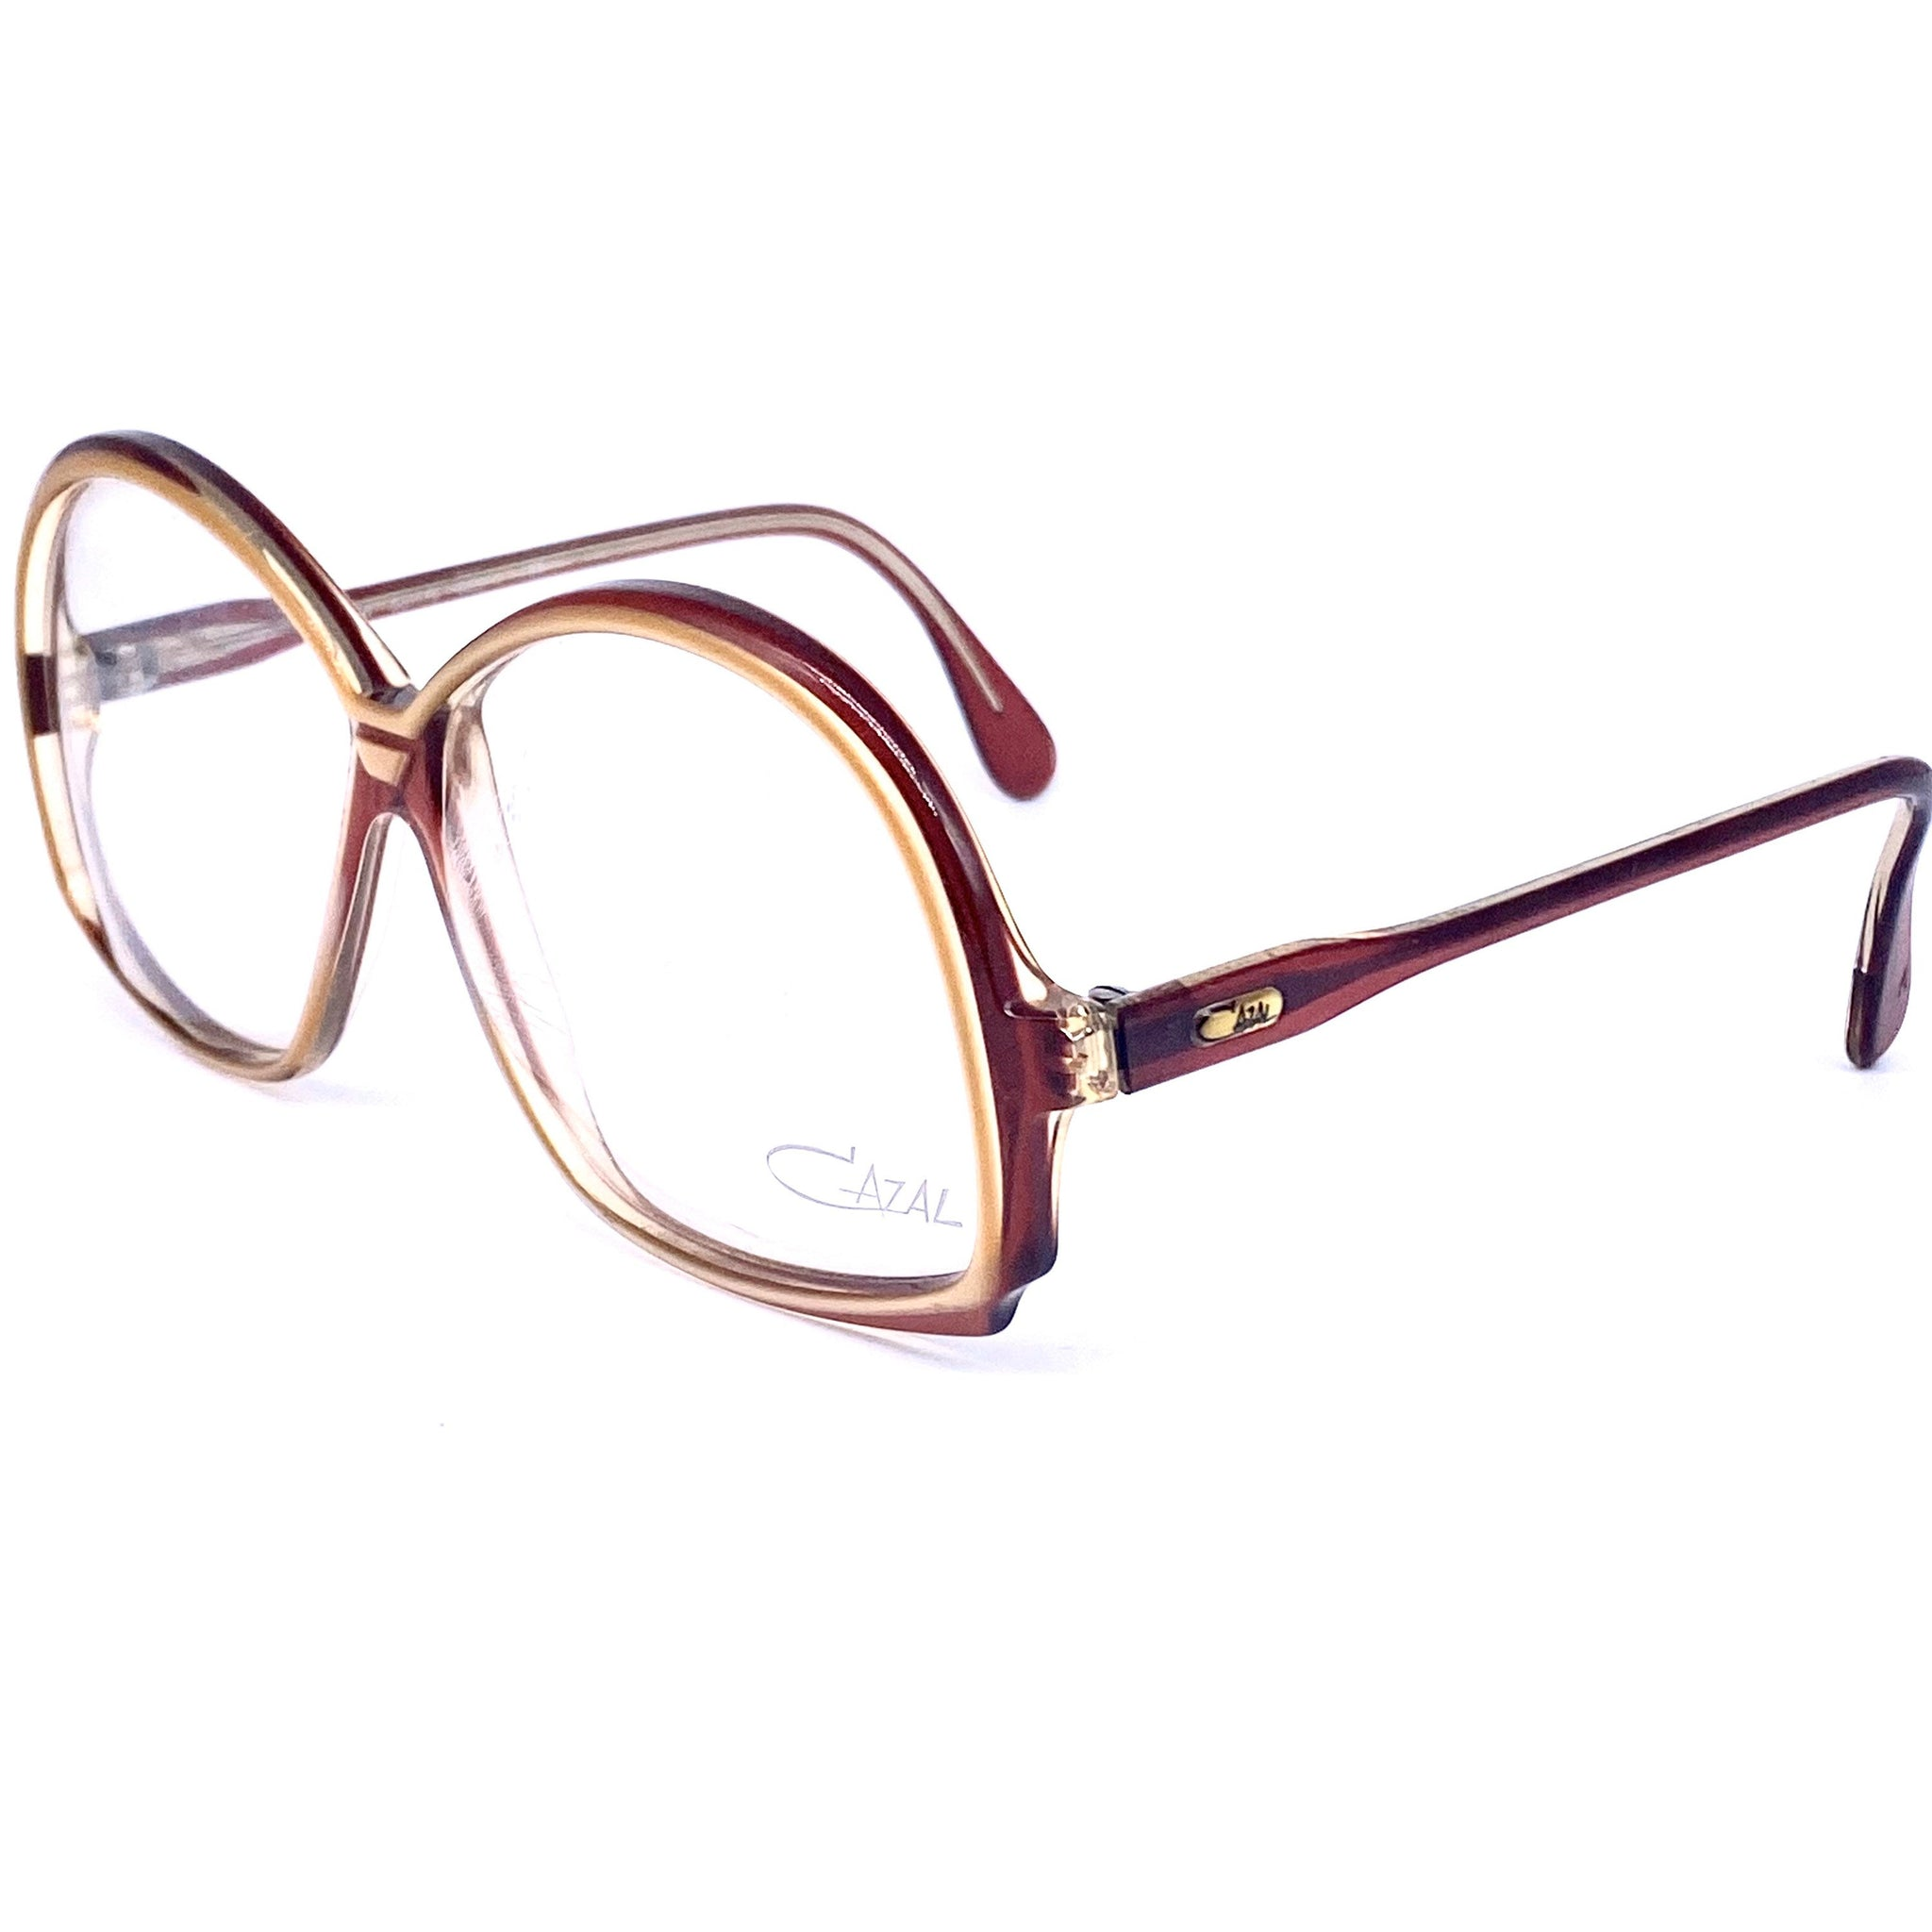 Cazal 156 oversized glasses frames made in west Germany, multilayered frames in 2 colors - viceversashop